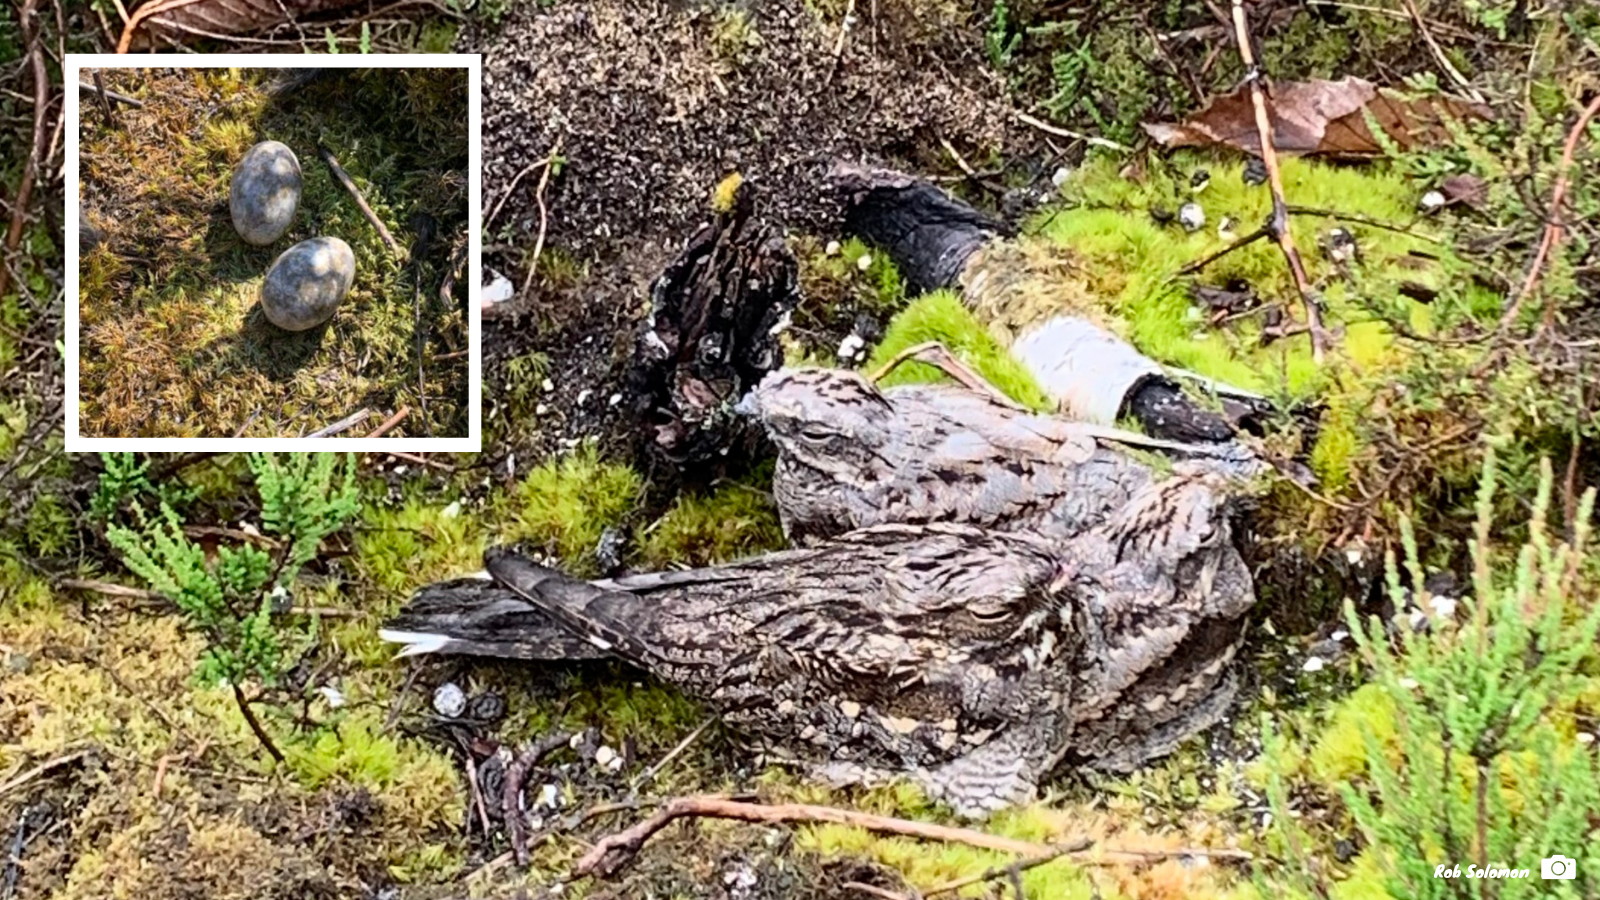 Three nightjars on a nest, with an inset photograph showing the two eggs on the ground